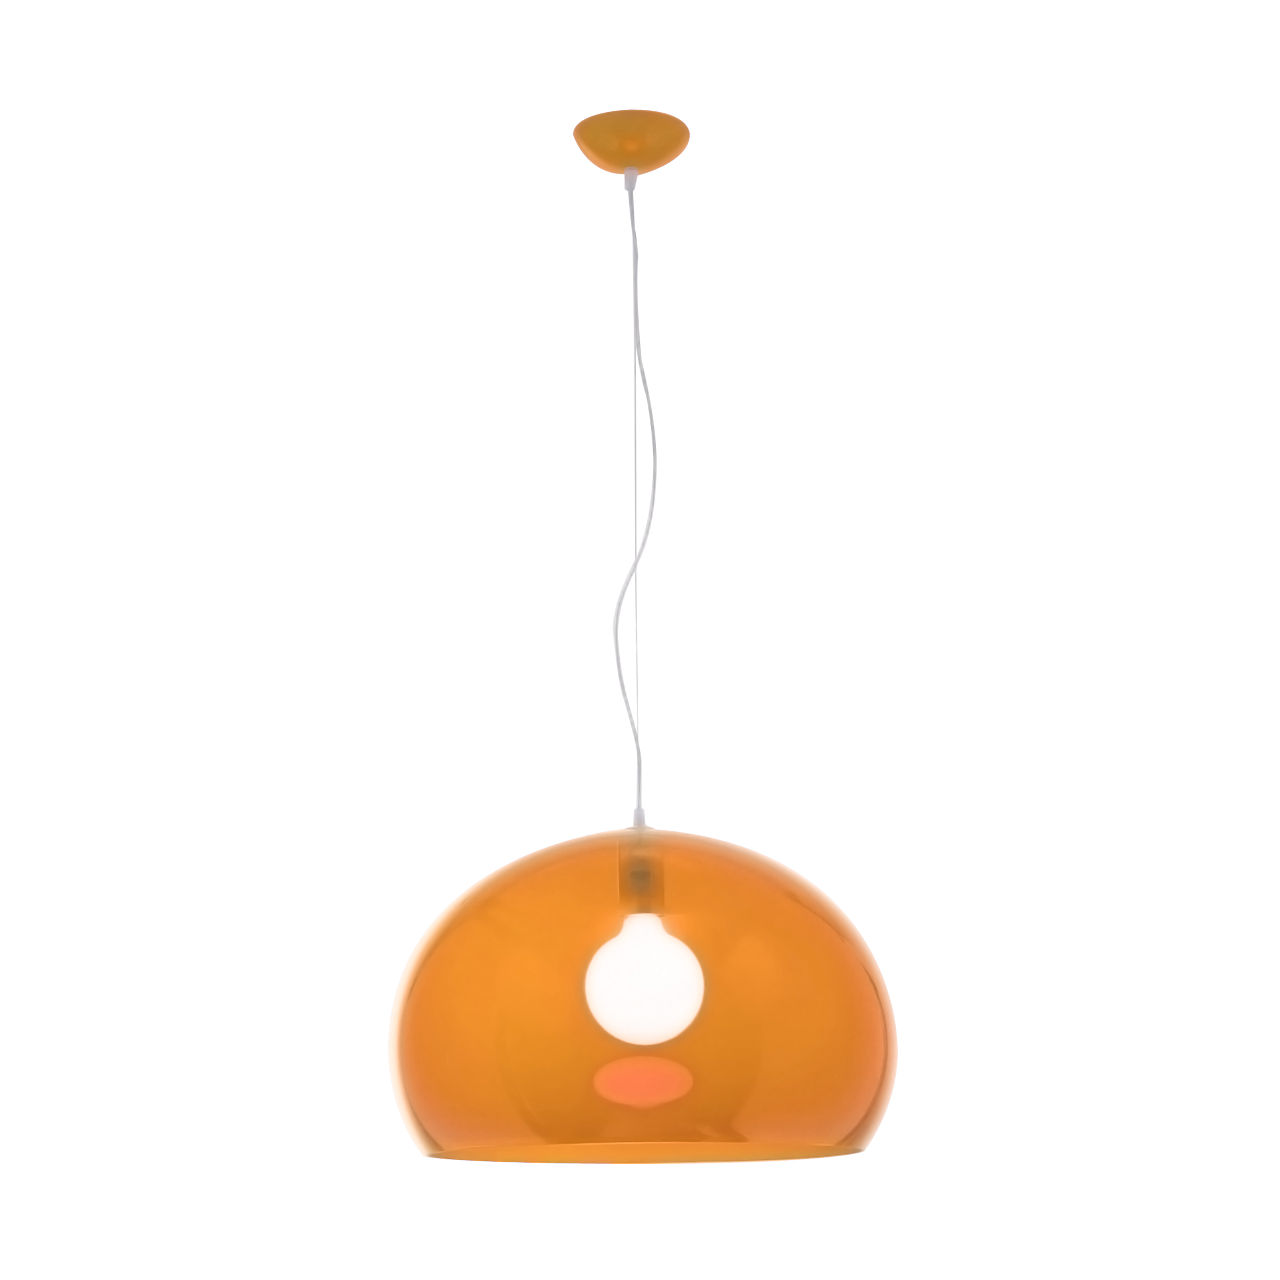 FLY Hanging Lamp in Orange by Kartell